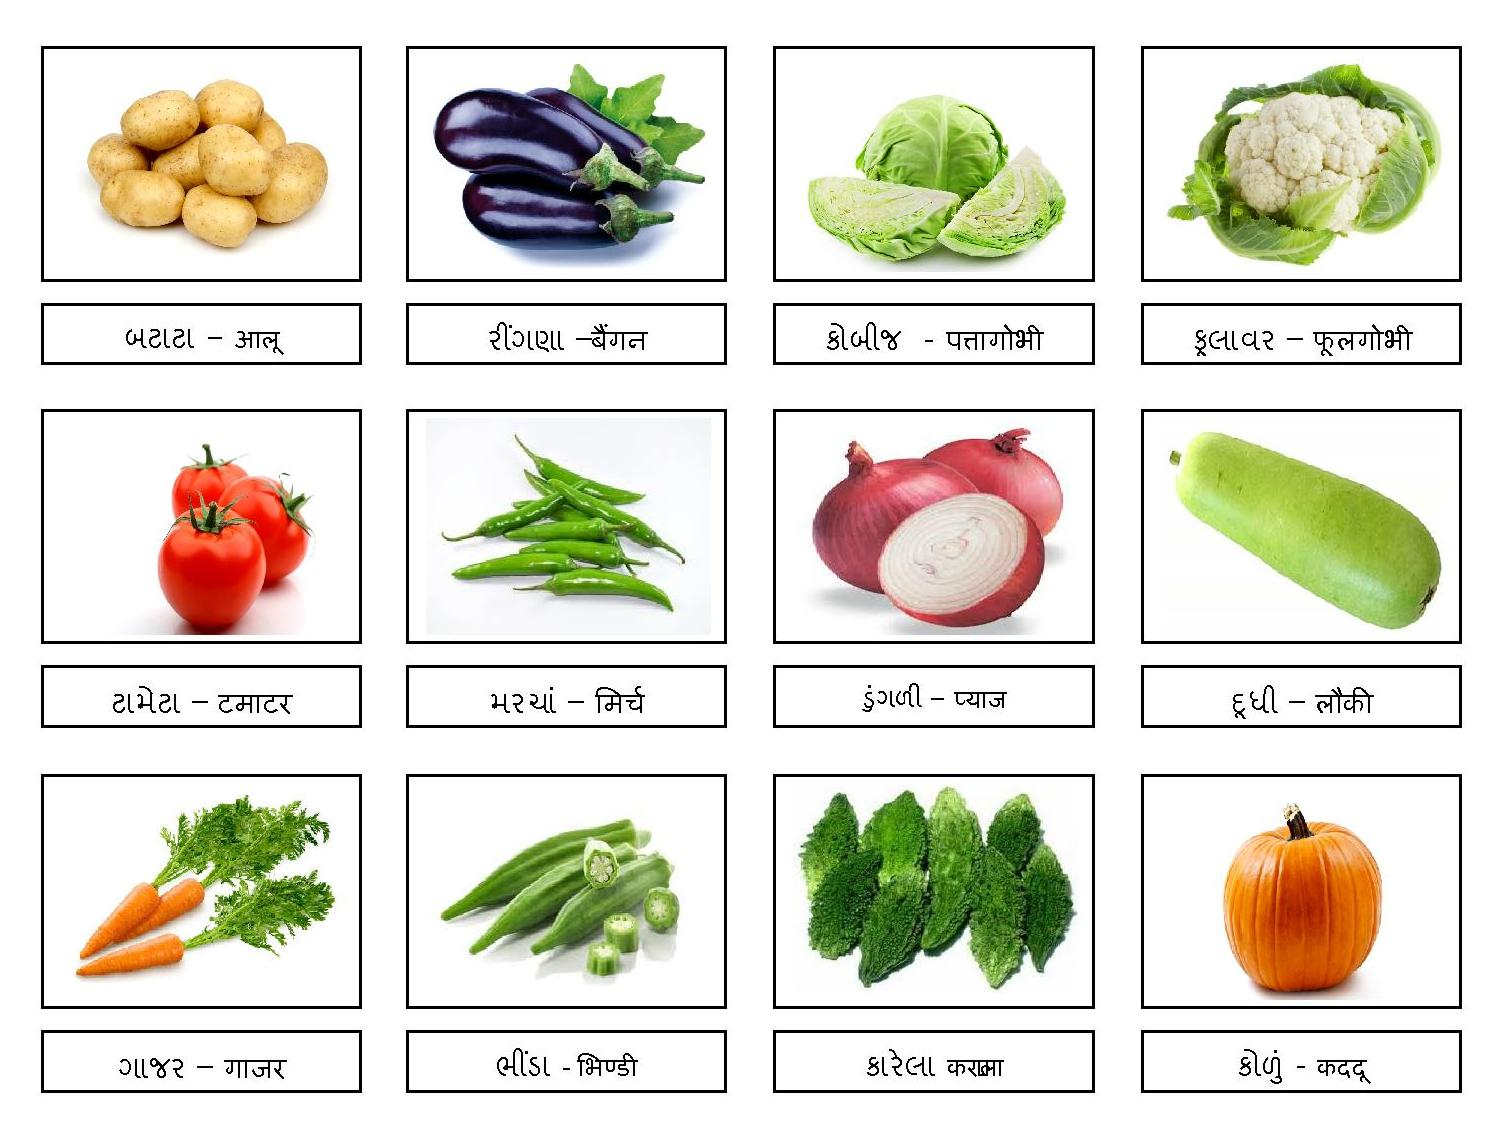 Vegetables Name In English And Hindi Both